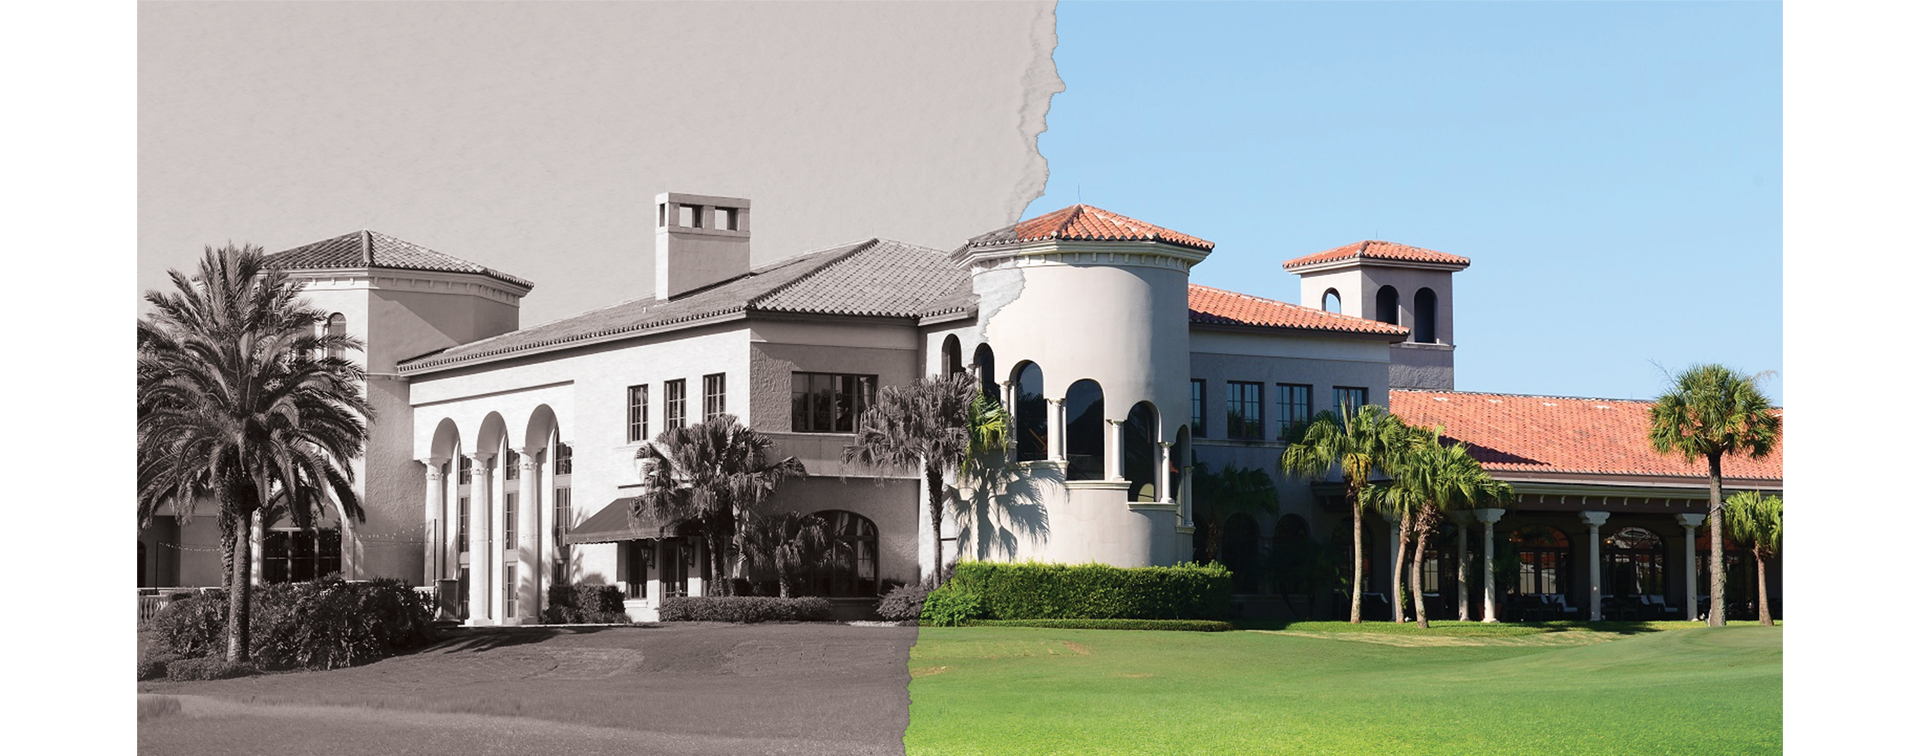 The Country Club of Orlando: 106 Years of Tradition